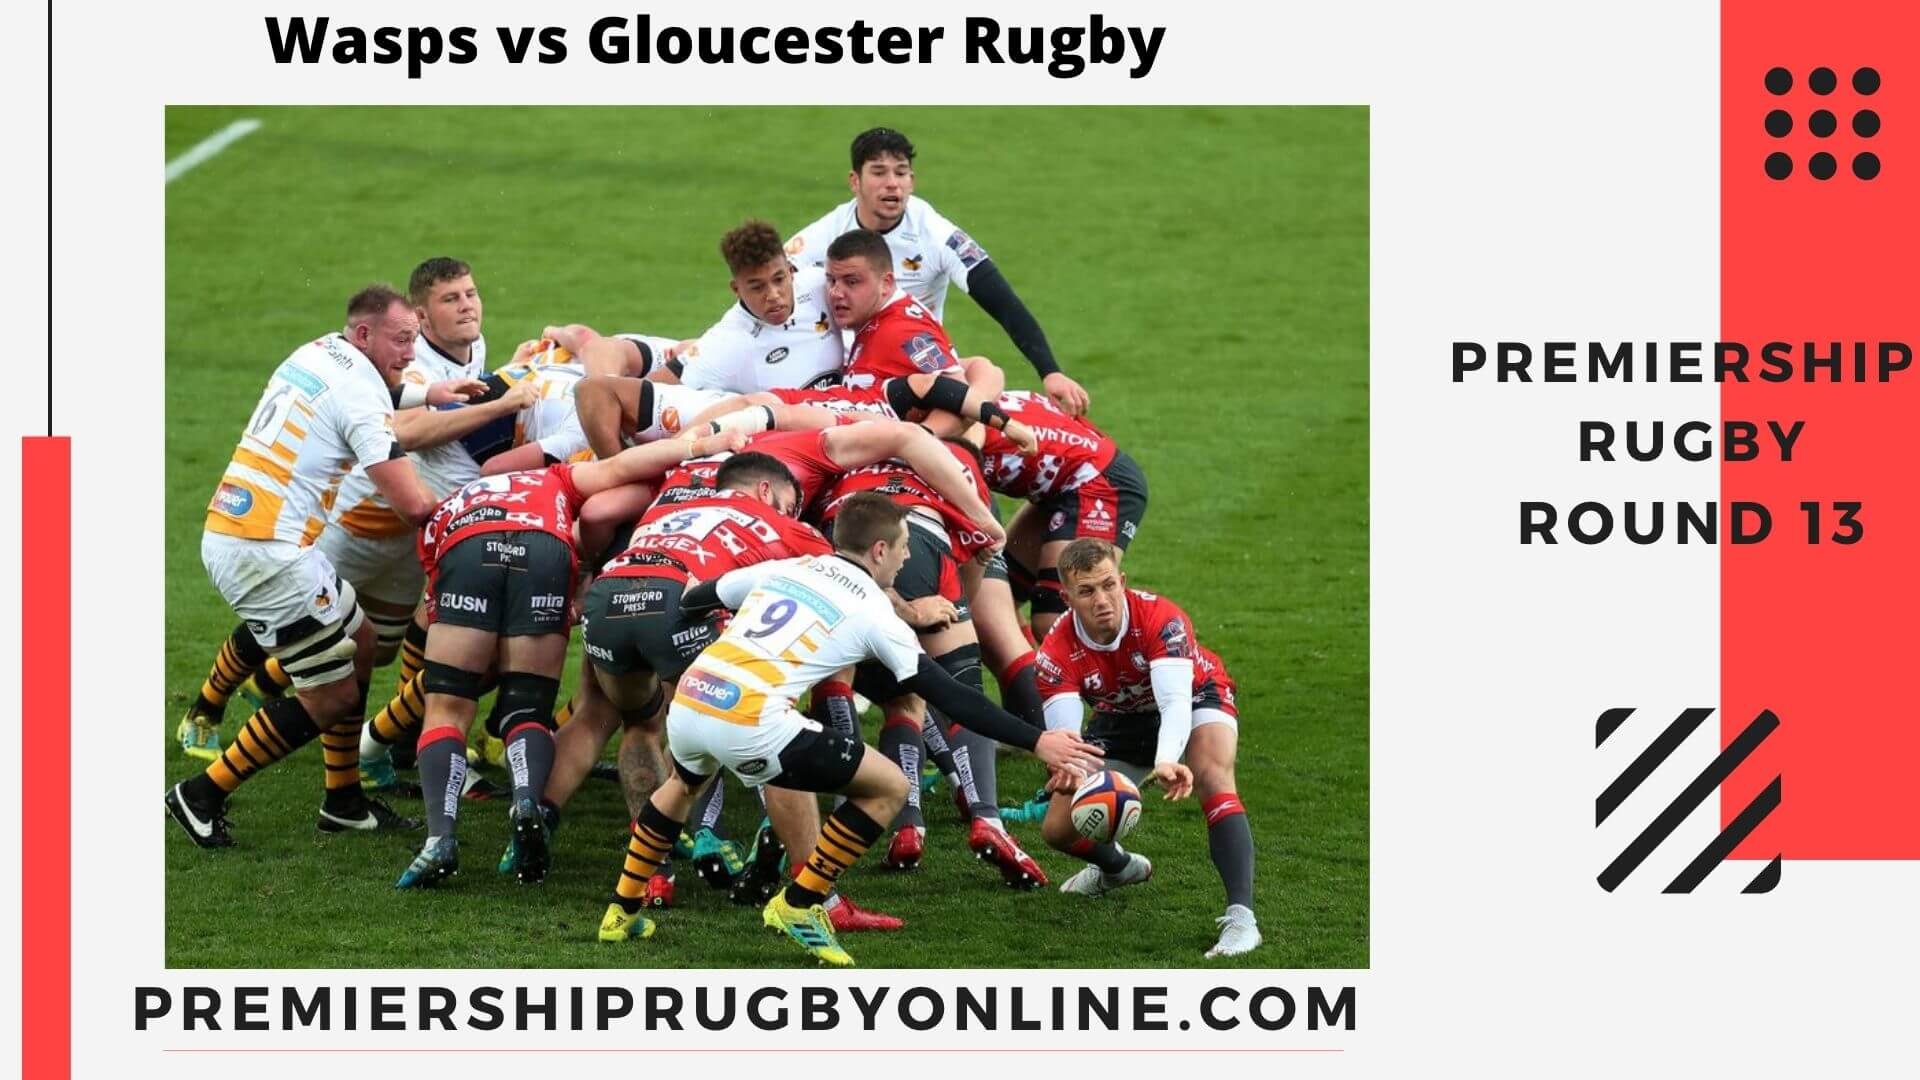 Wasps vs Gloucester Rugby live stream | Round 13